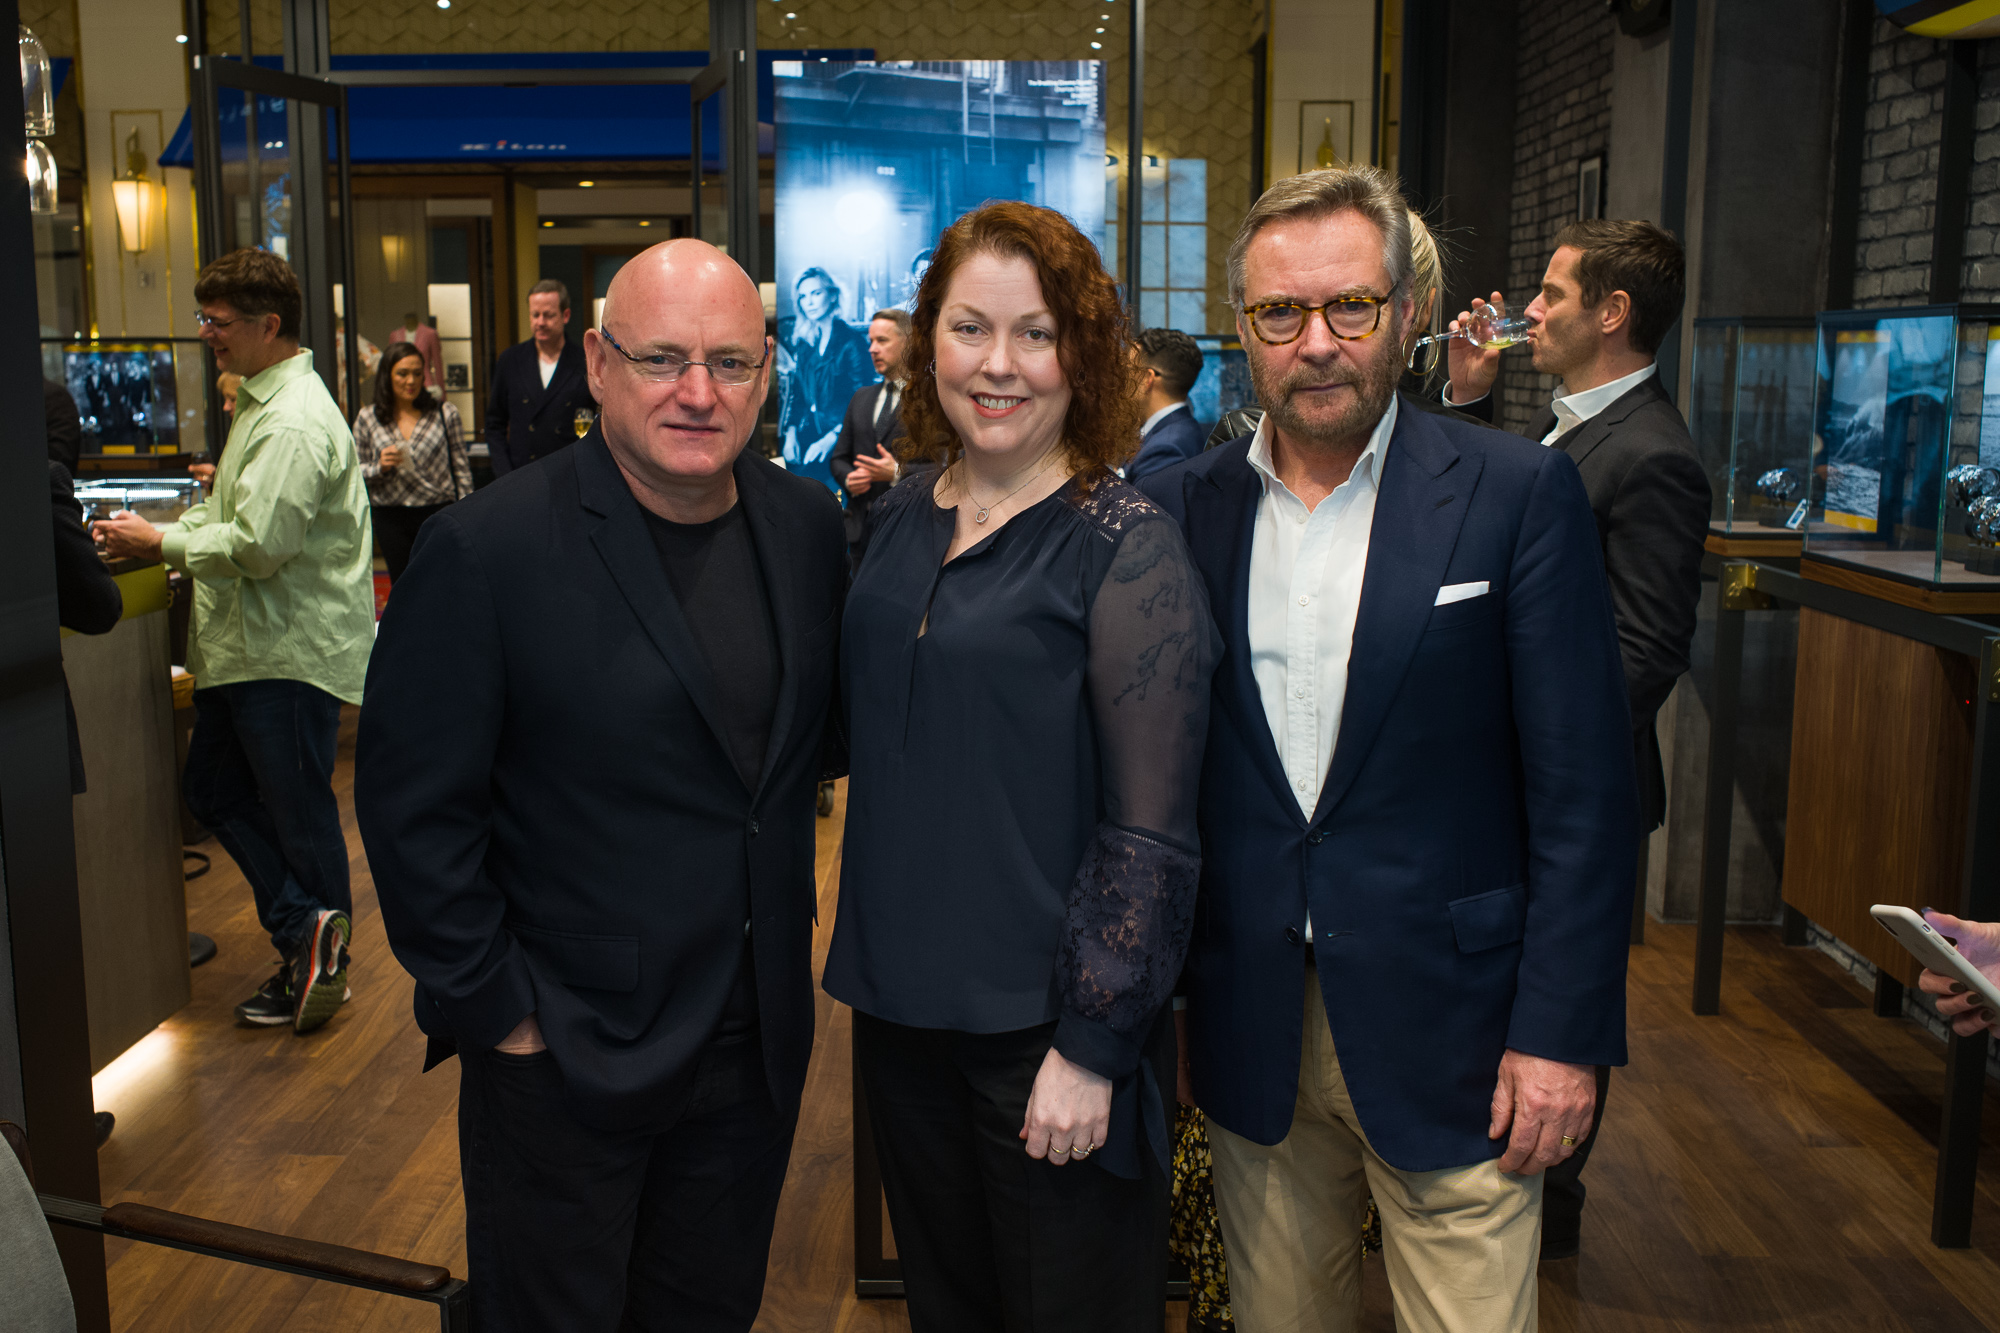 Commander Scott Kelly, RedBar CEO Kathleen McGivney, and WoS CEO Brian Duffy at the opening of the new Breitling Boutique at the Wynn.